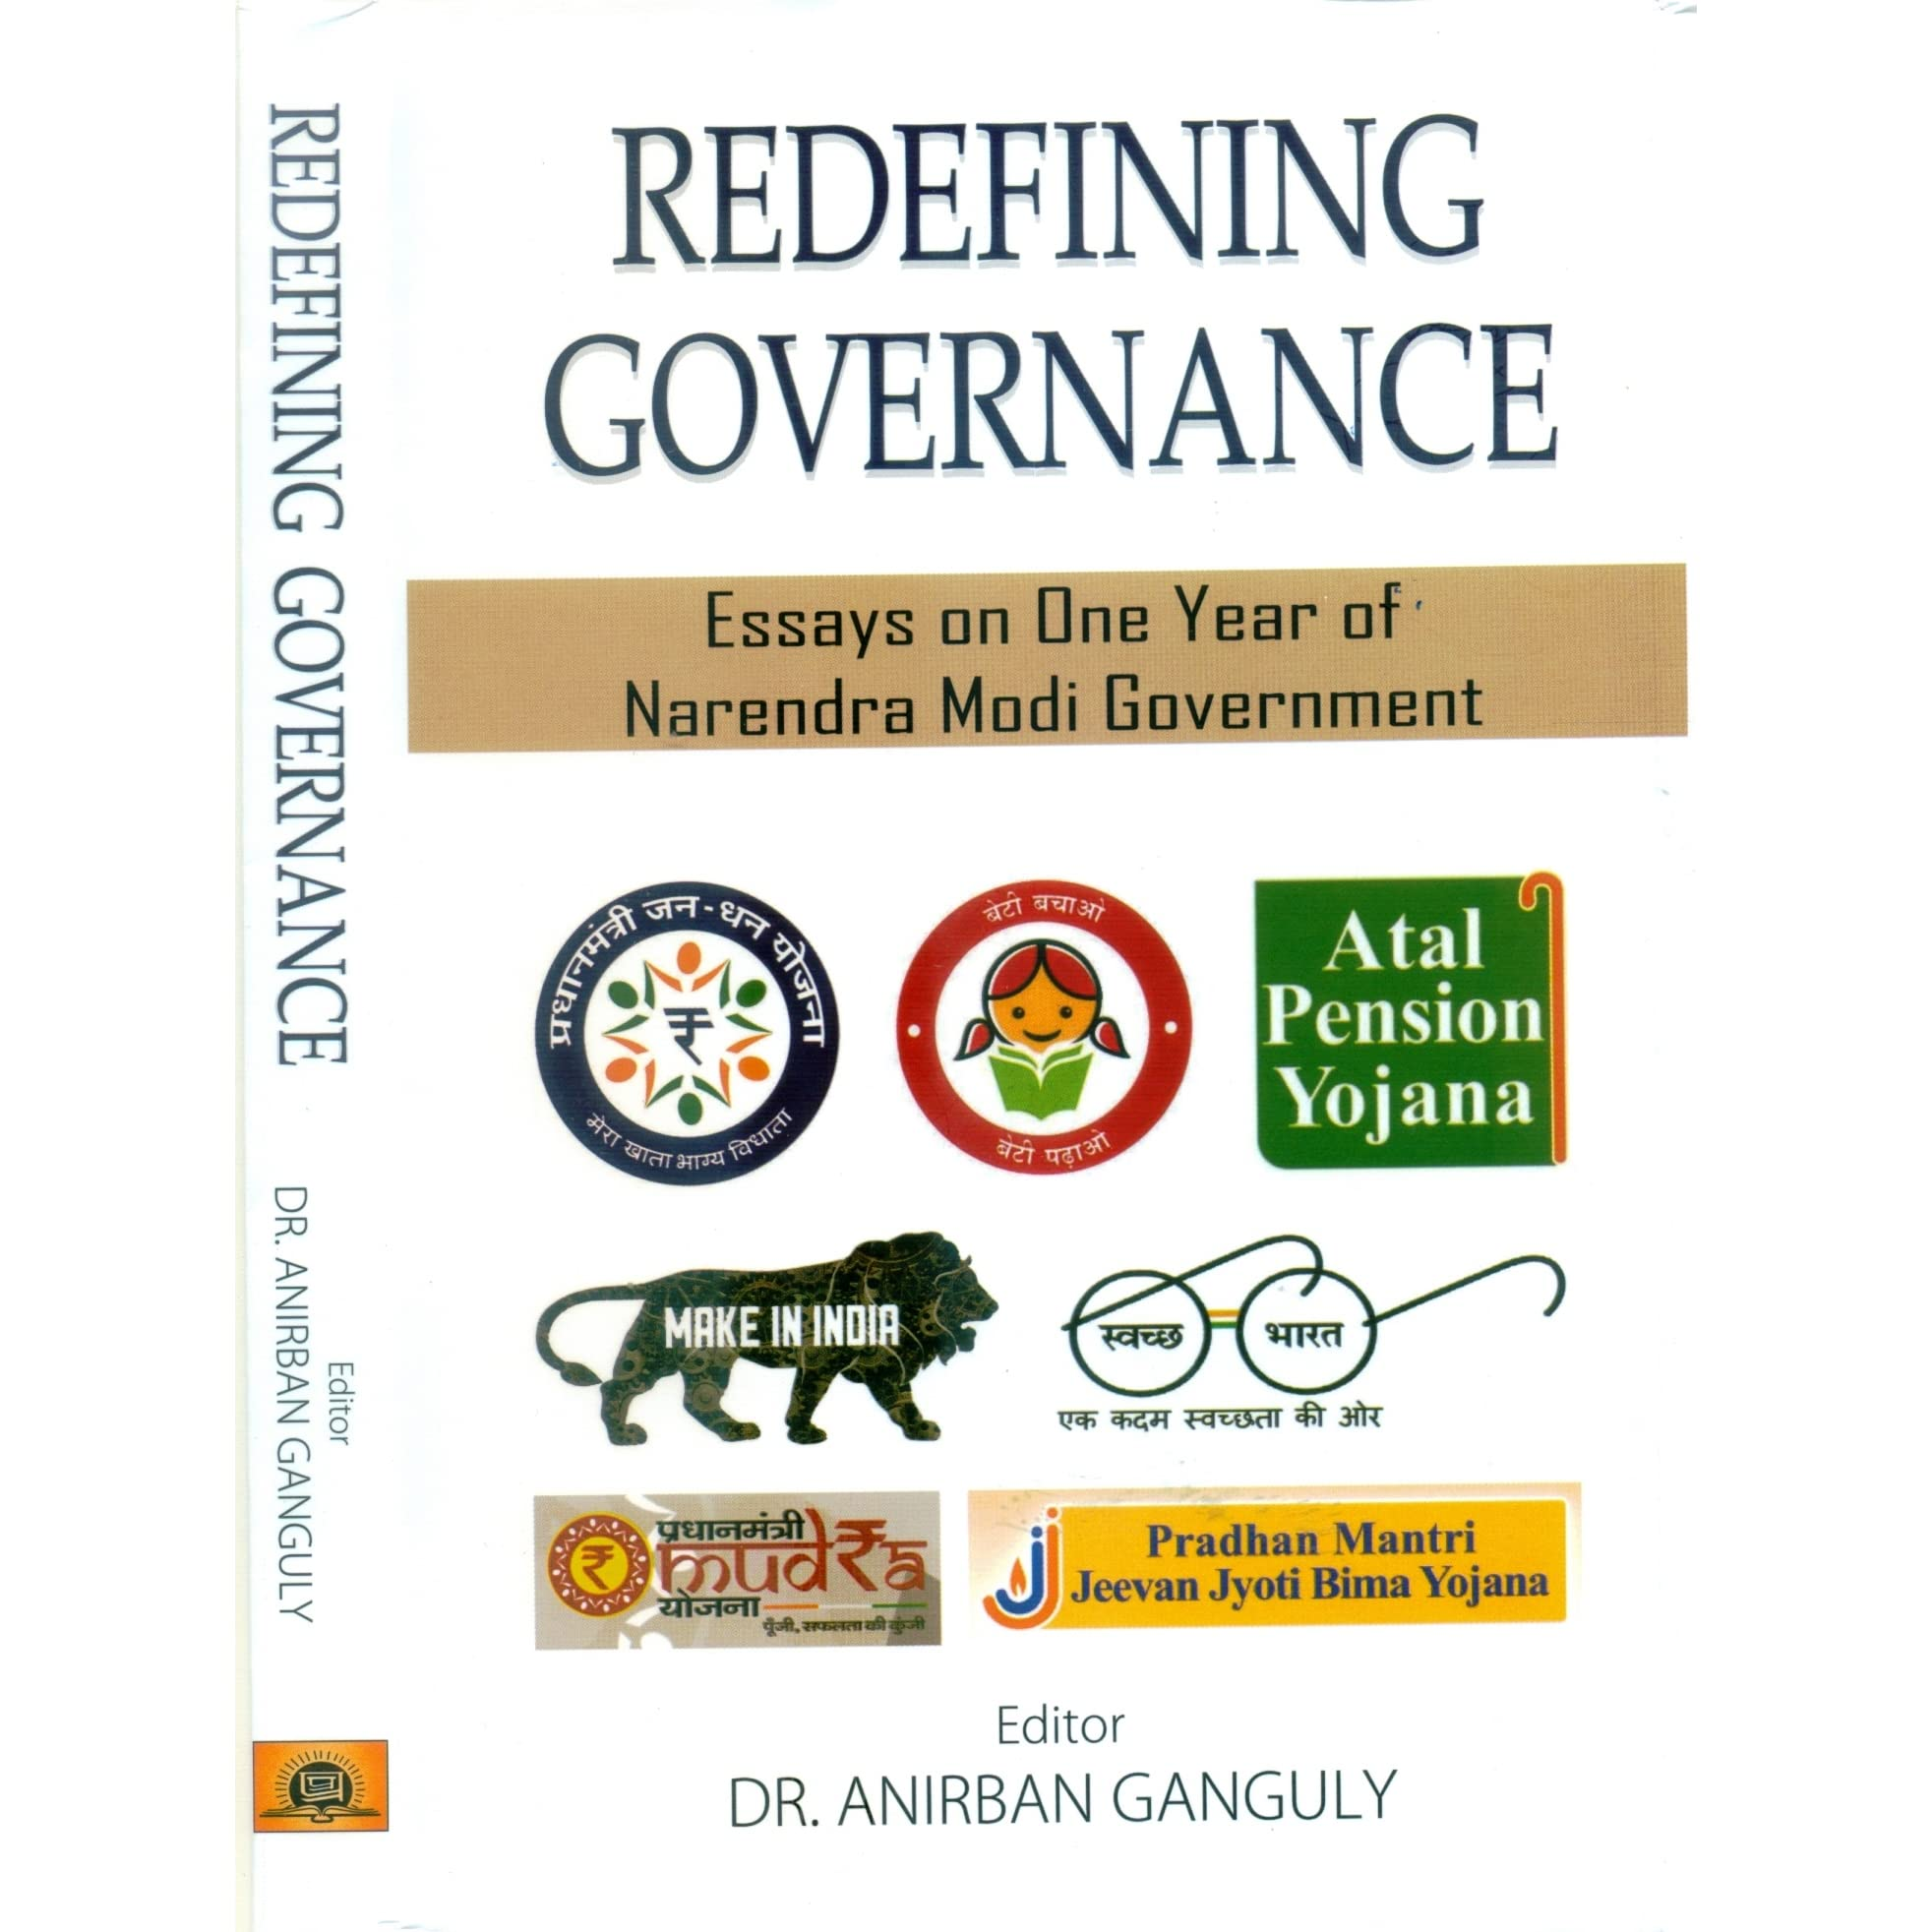 redefining governance essays on one year of narendra modi  redefining governance essays on one year of narendra modi government by  anirban ganguly